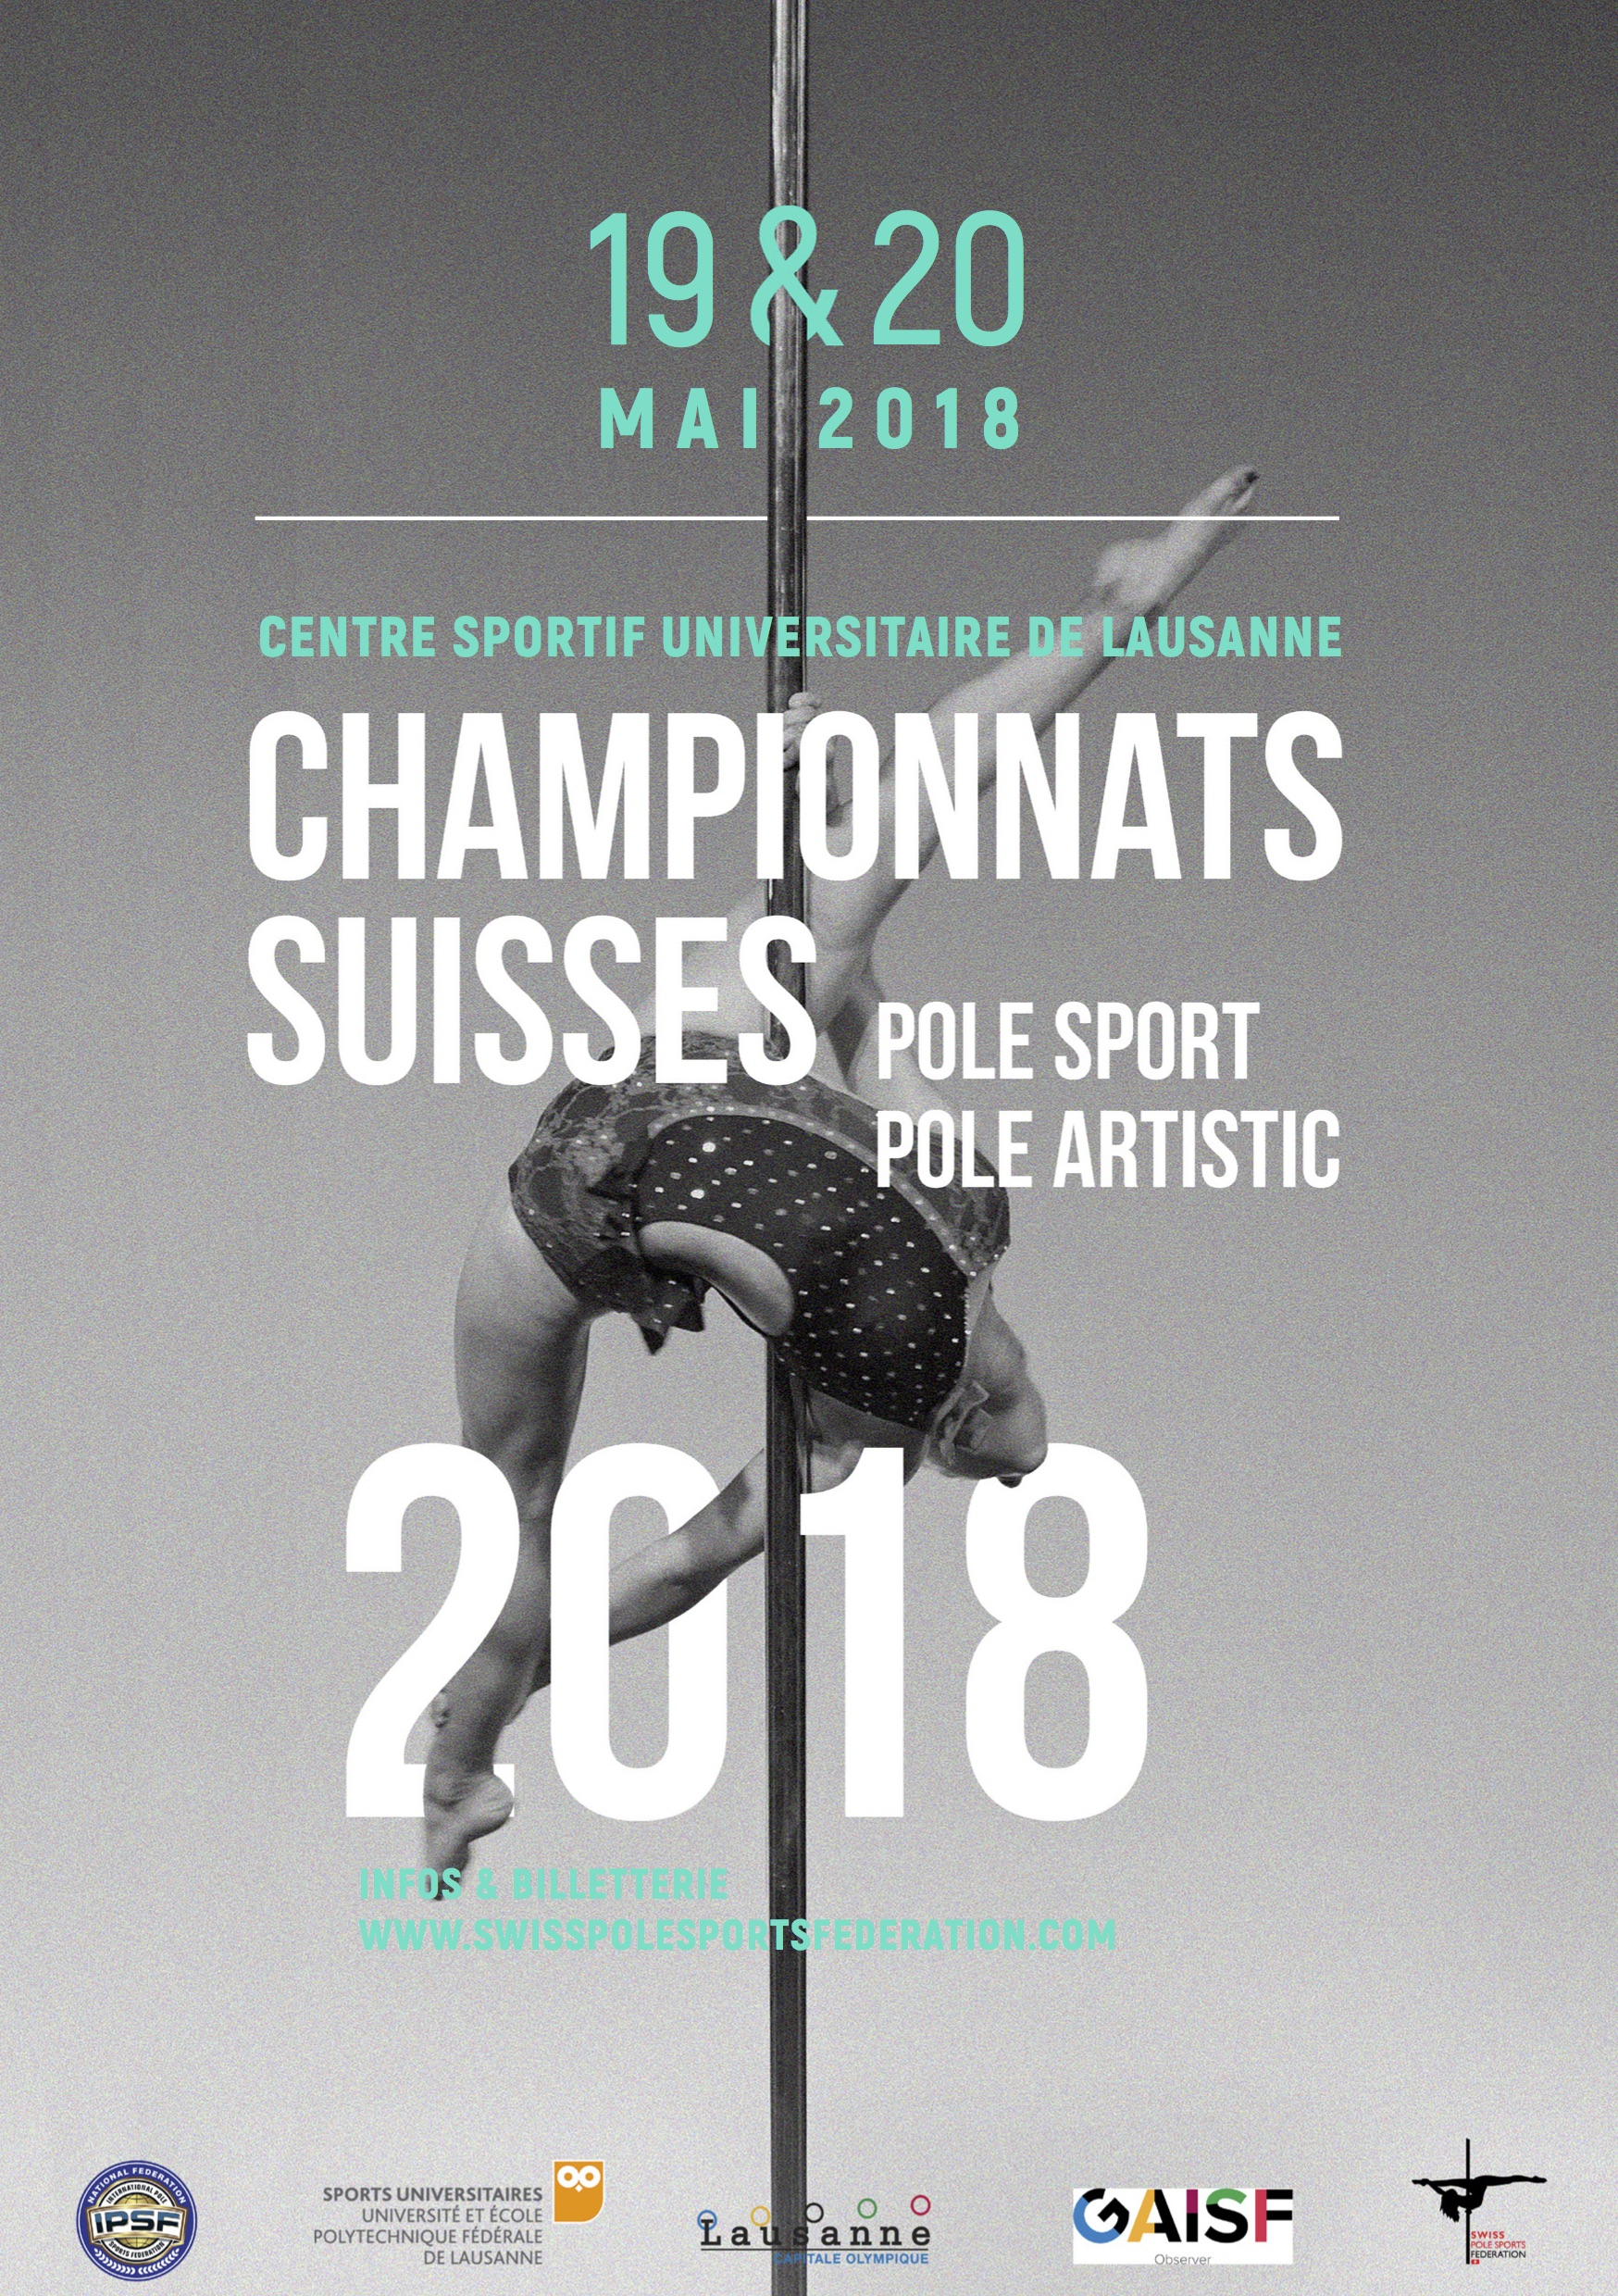 Swiss Pole Sport, Pole Artistic, Parapole & Open IPSF Championships 2018